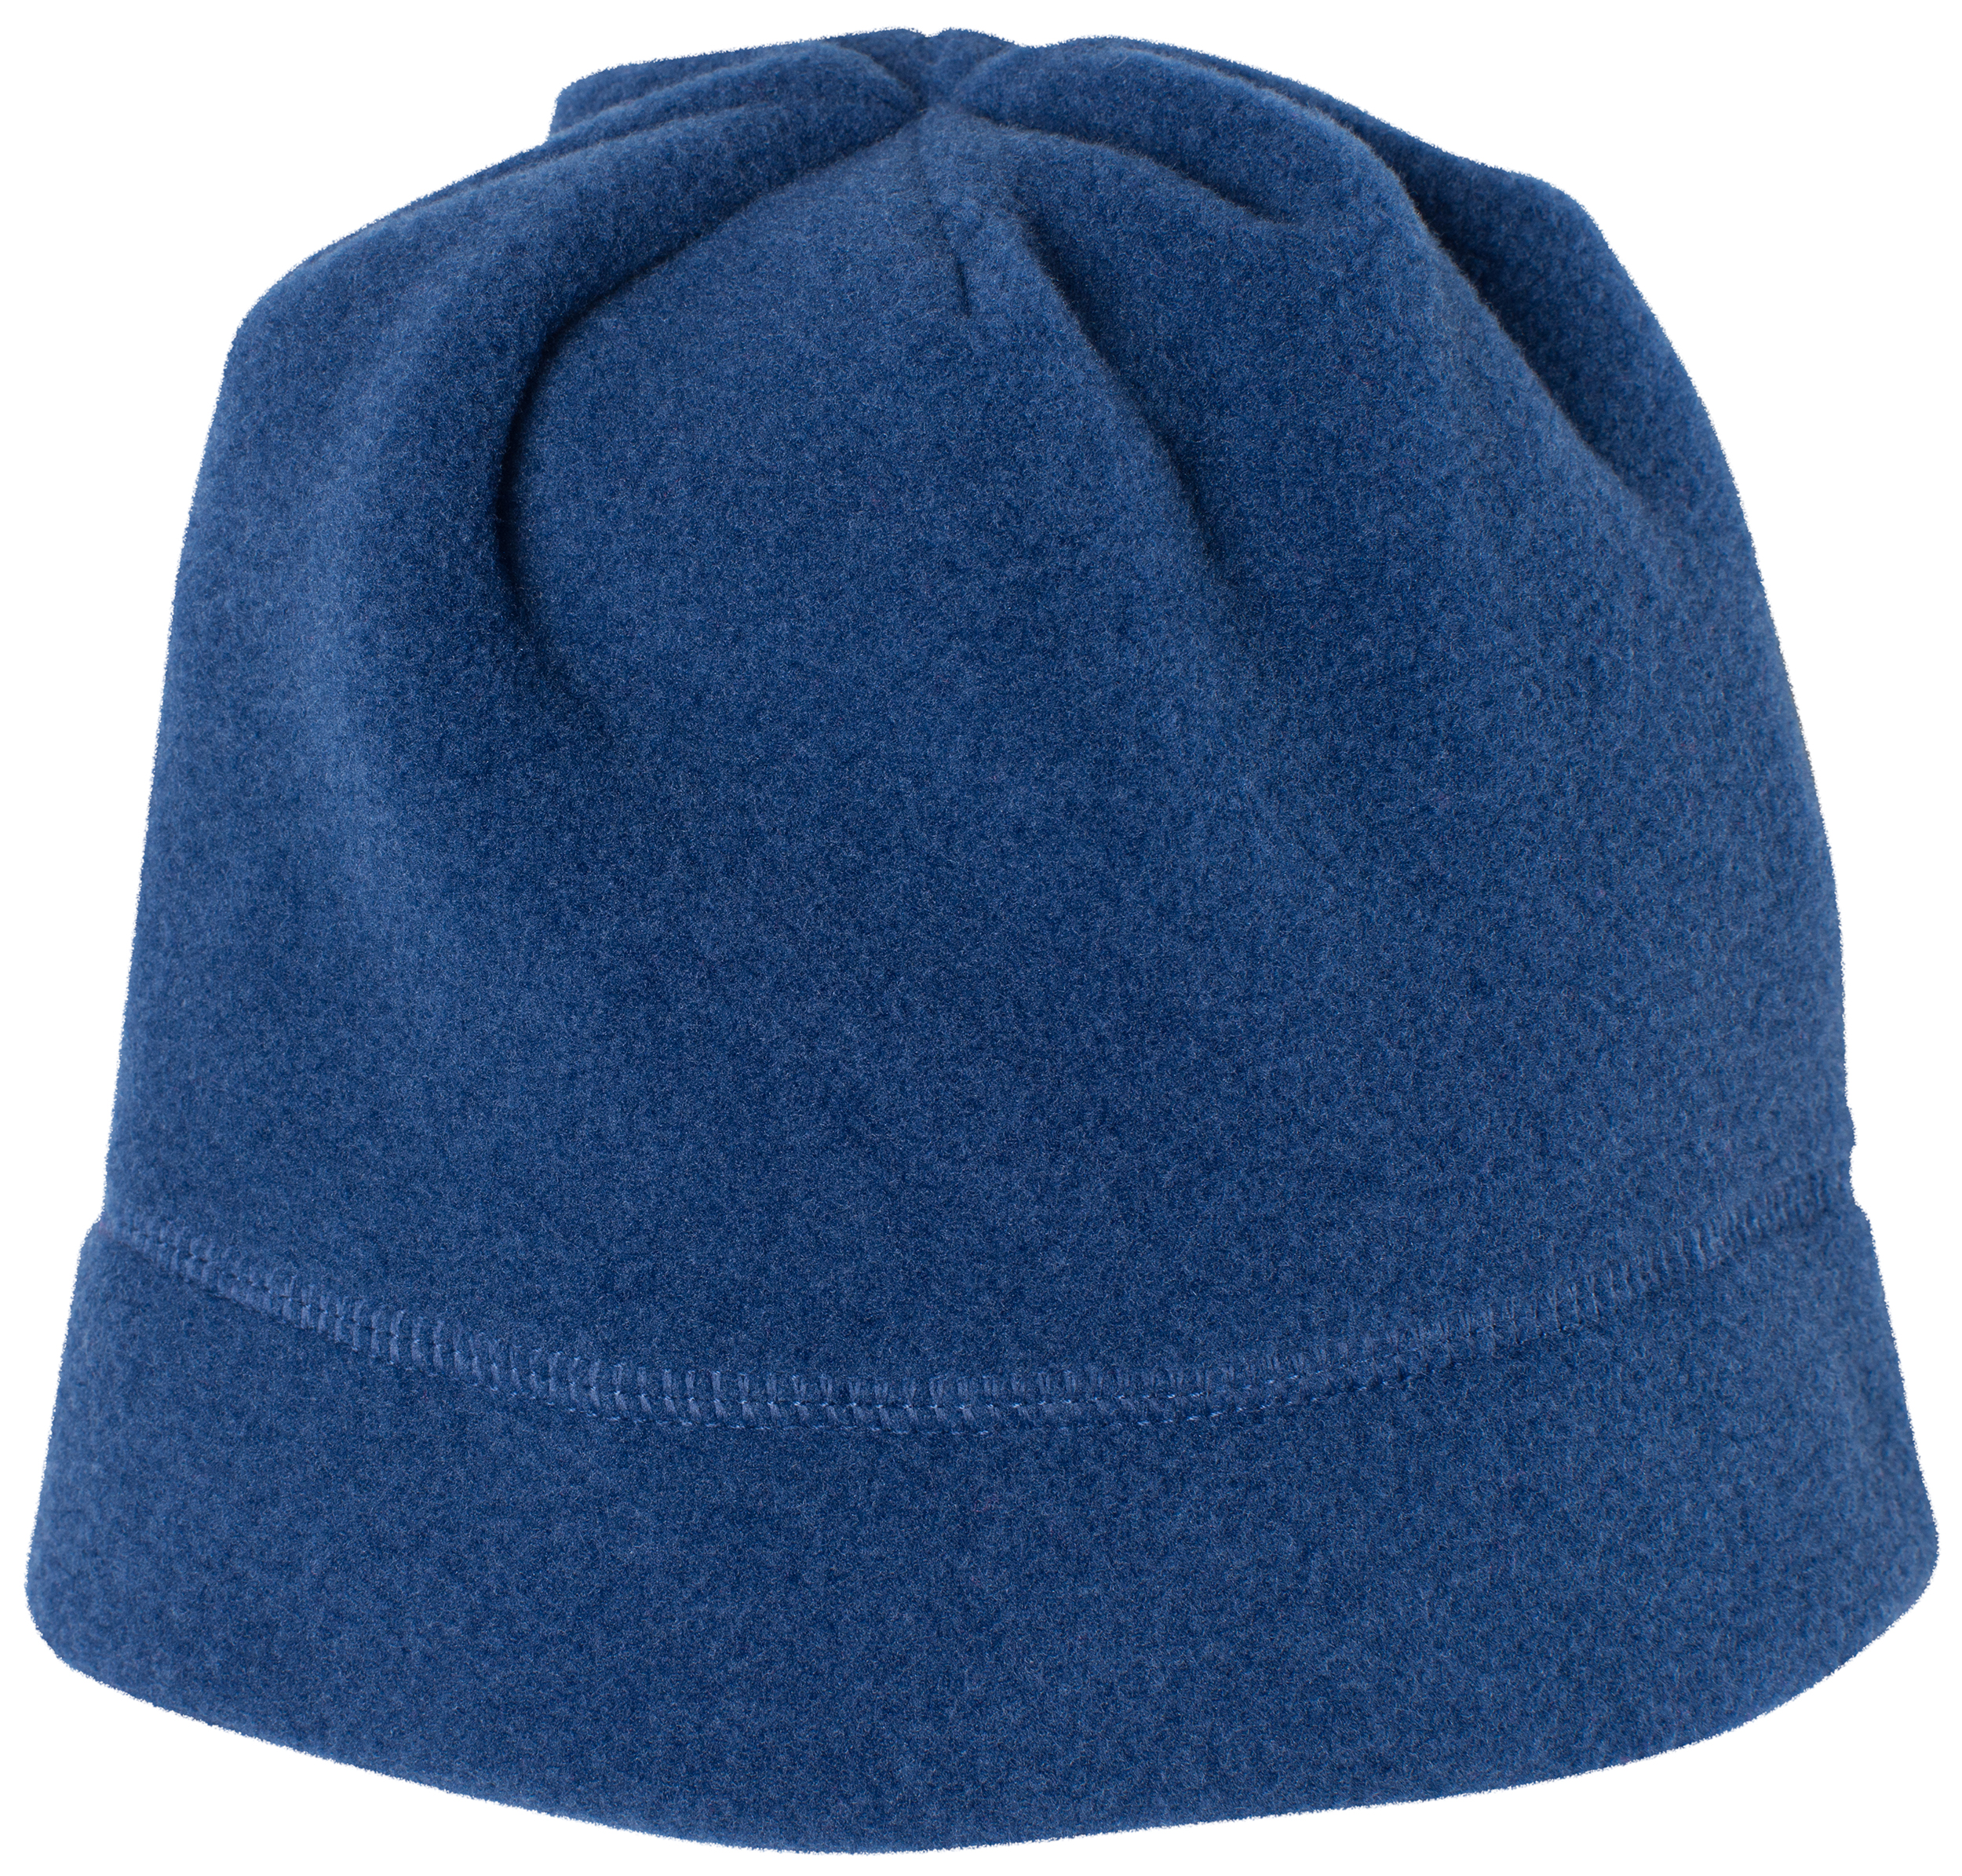 MEC Fleece Toque - Infants to Youths 7c4c507492b6